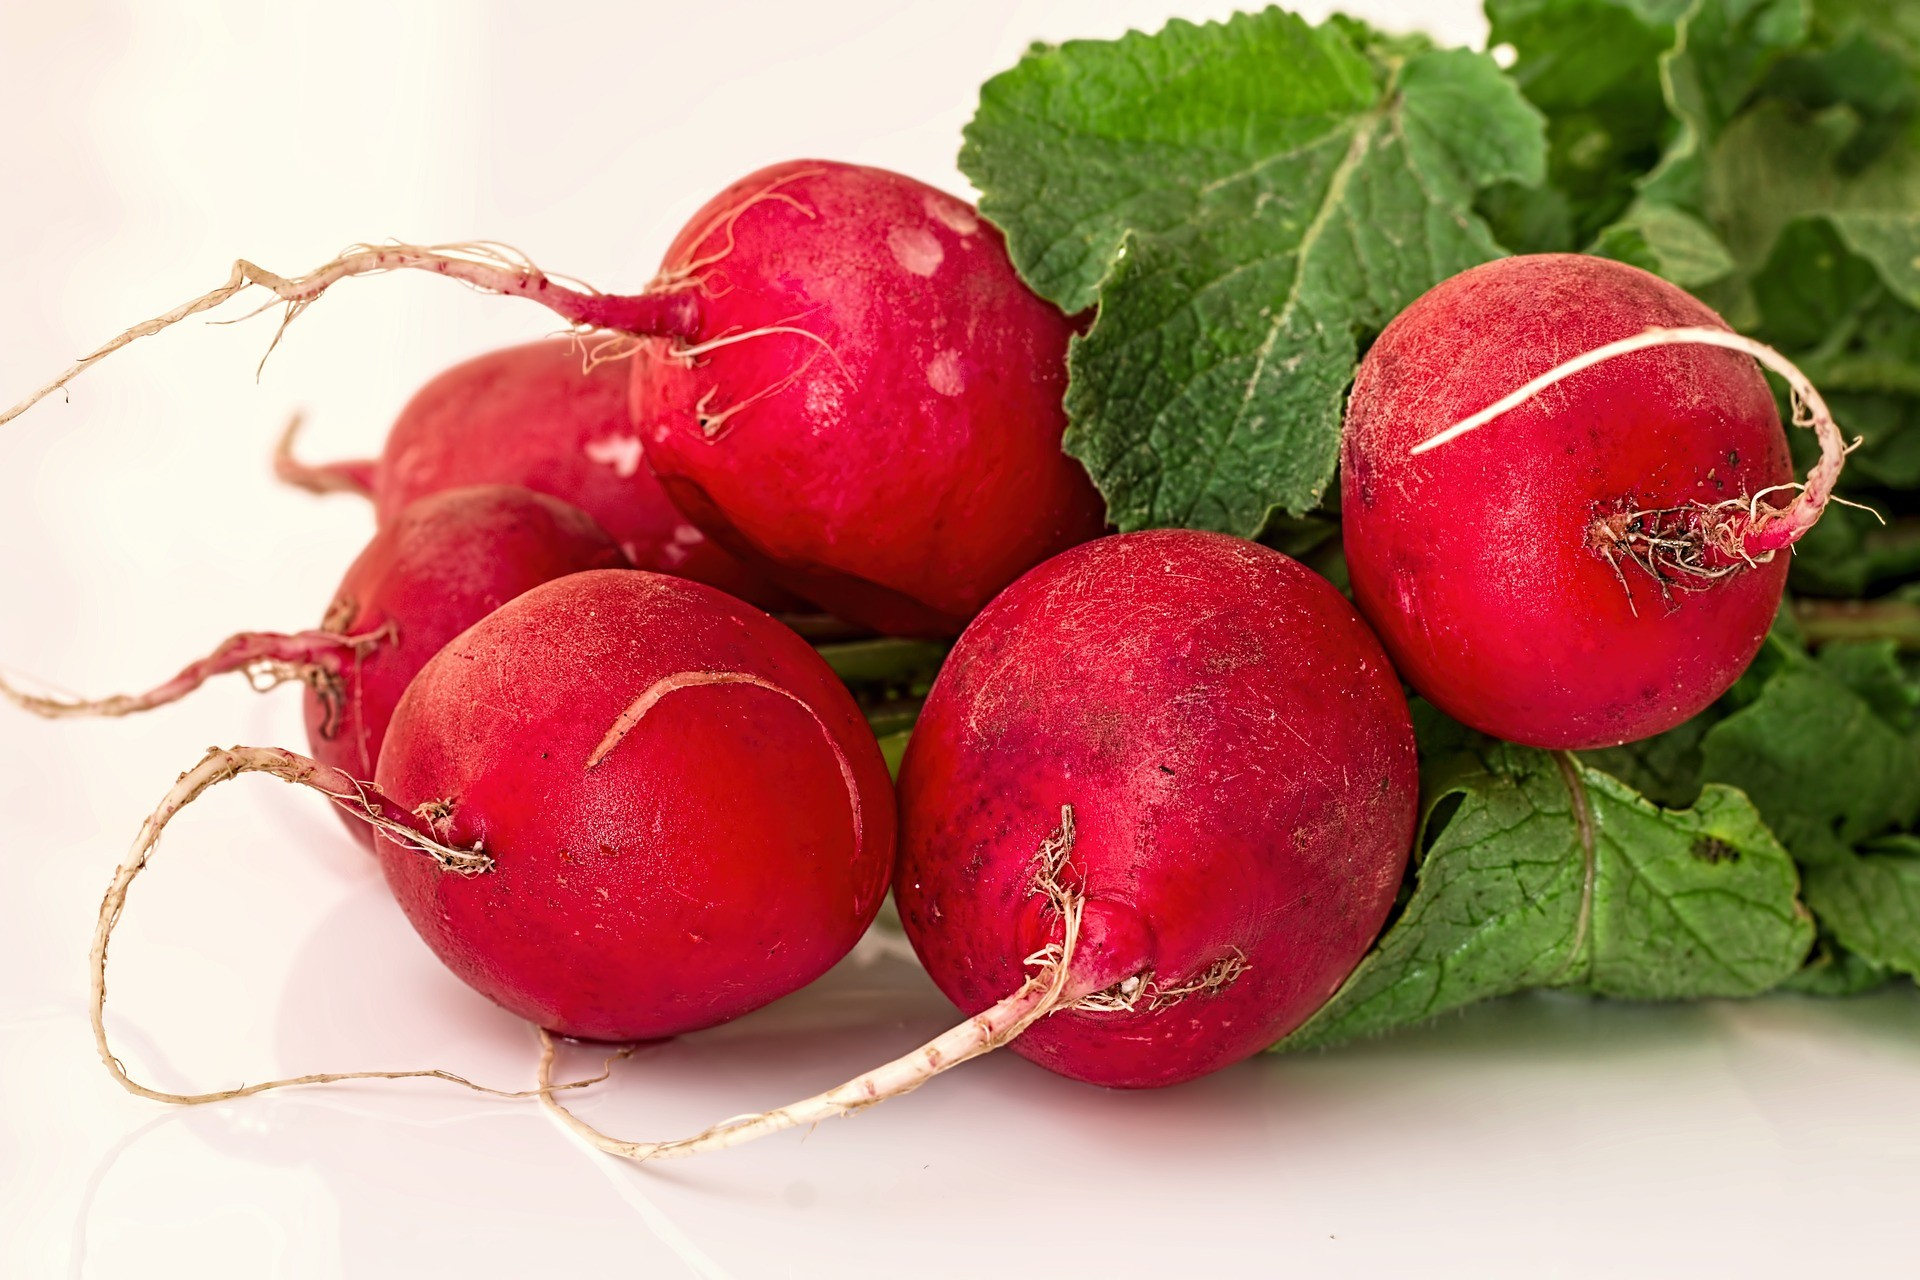 30 BEST Radish Health Benefits (+ What Are Radishes GOOD For?)